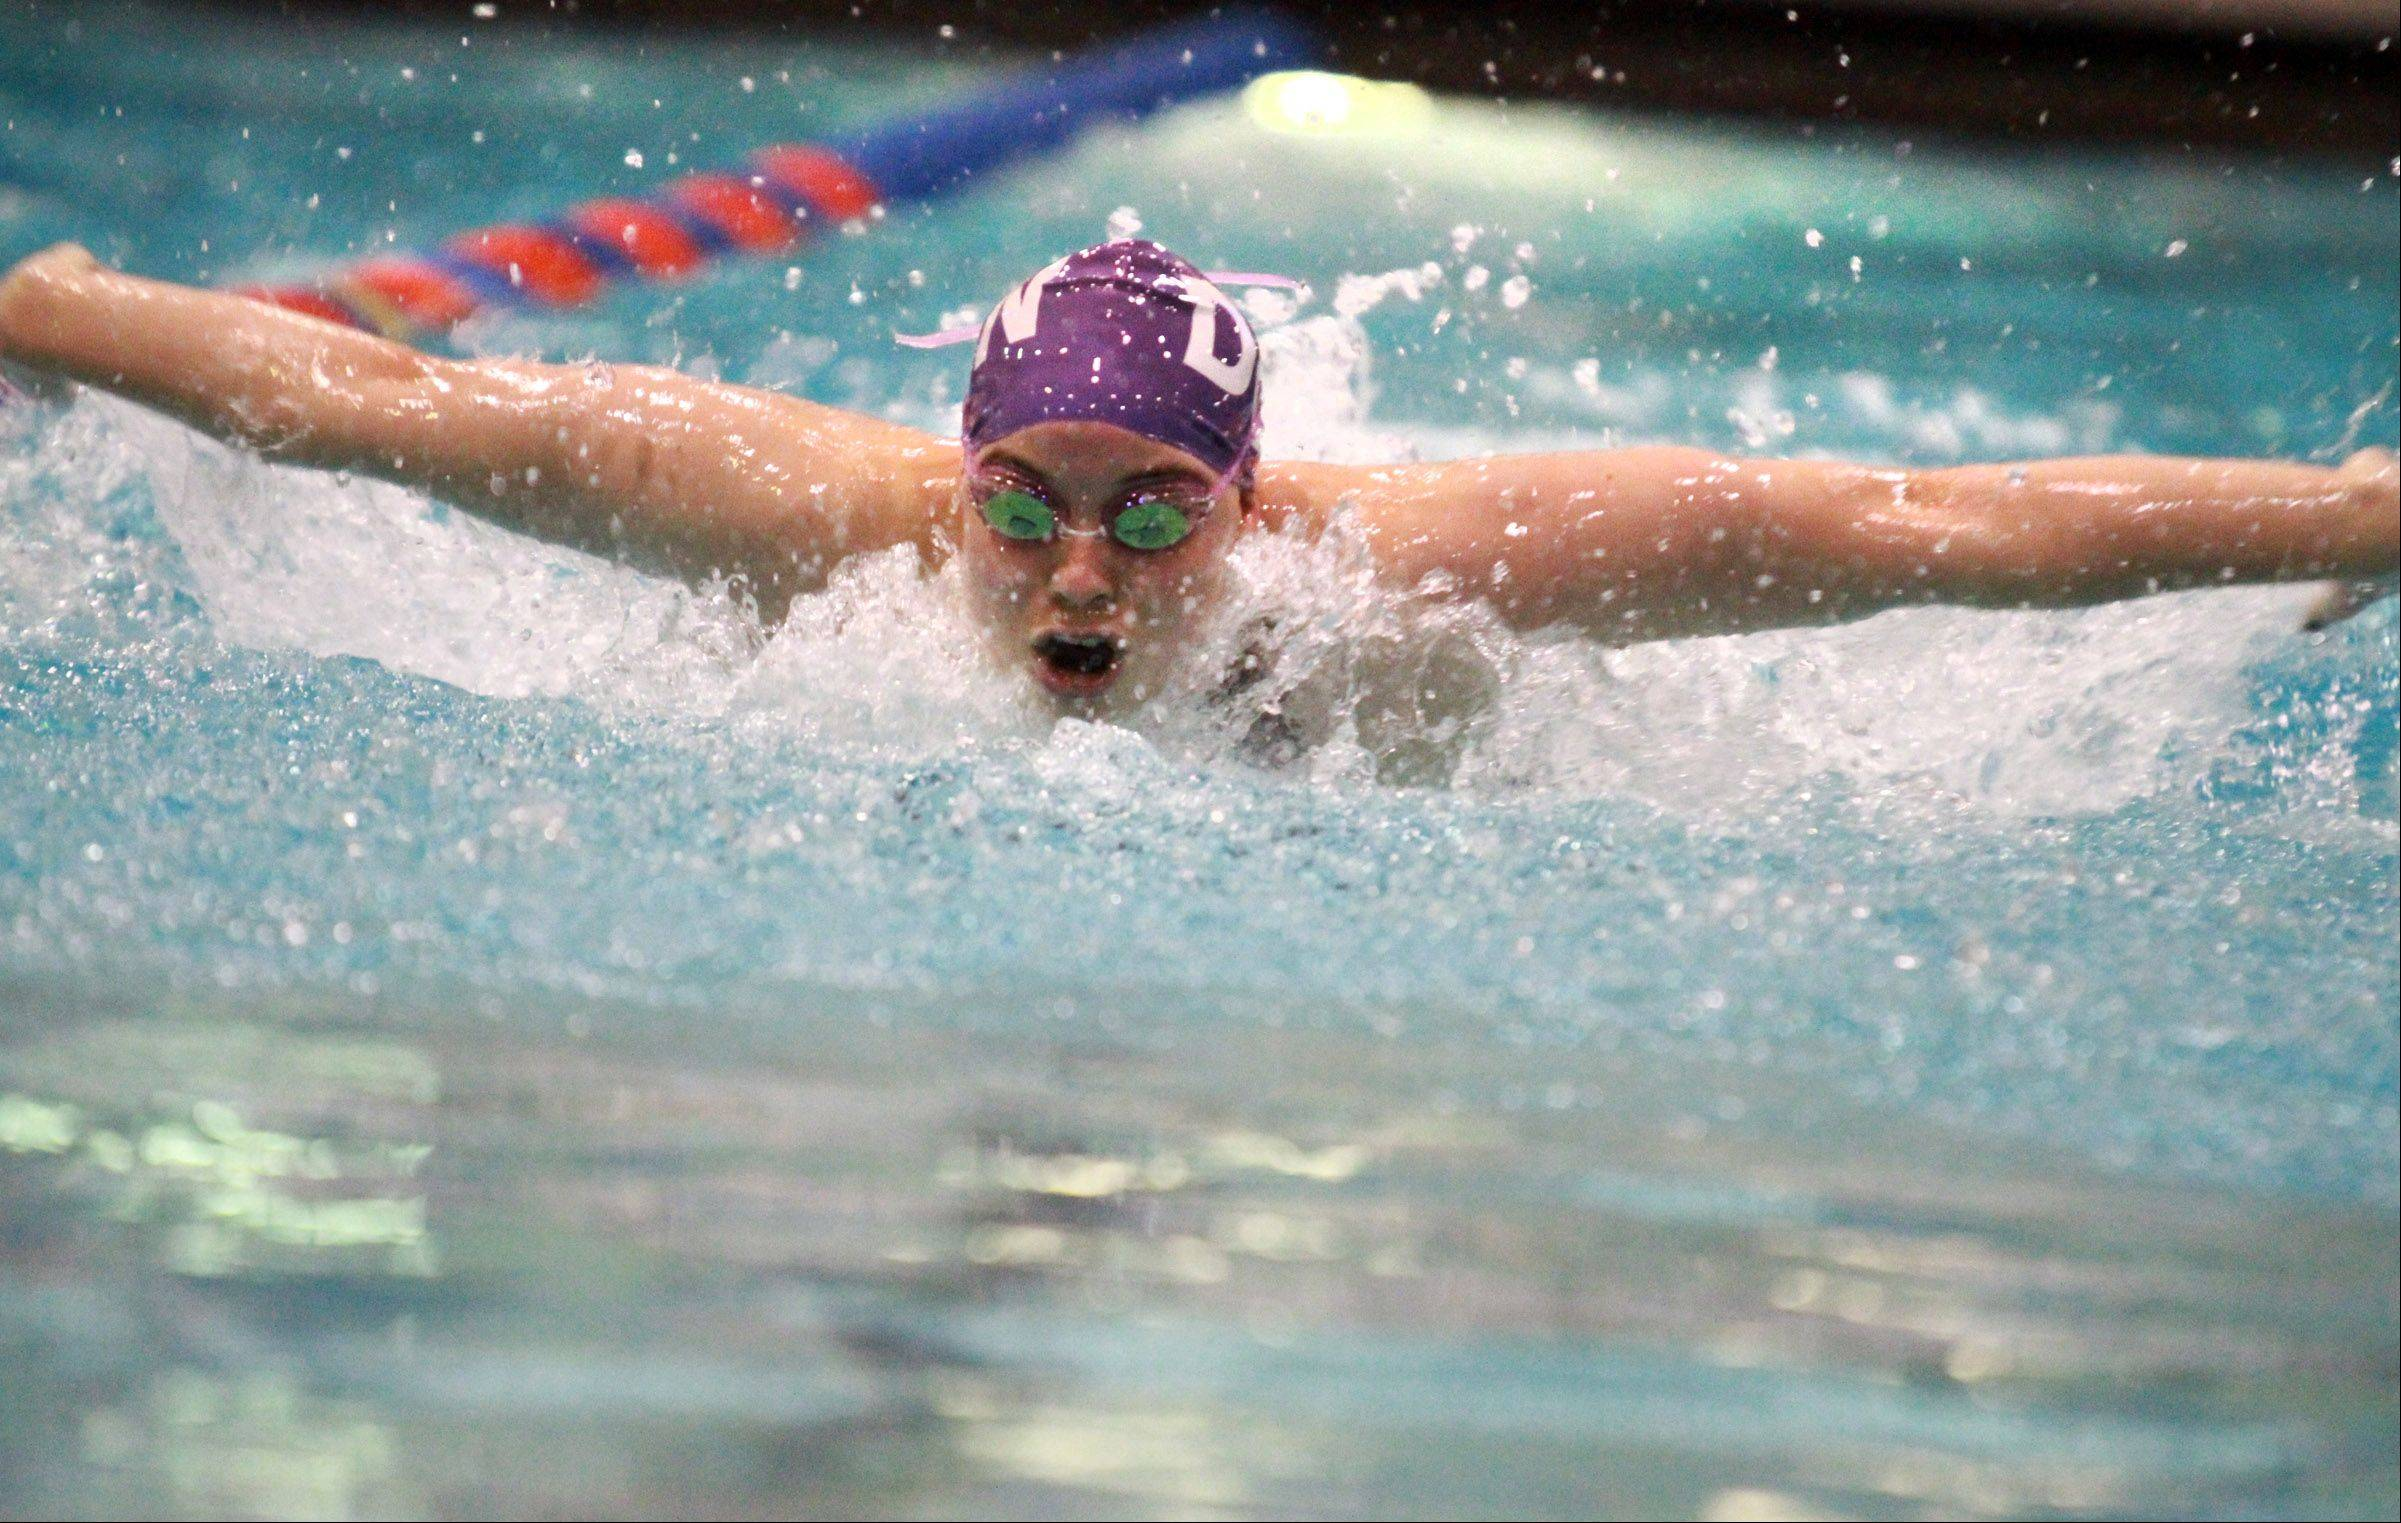 Maddy Sims with Downers Grove North placed fifteenth in the 100-yard butterfly at state preliminaries in Evanston on Friday, November 15, 2012.